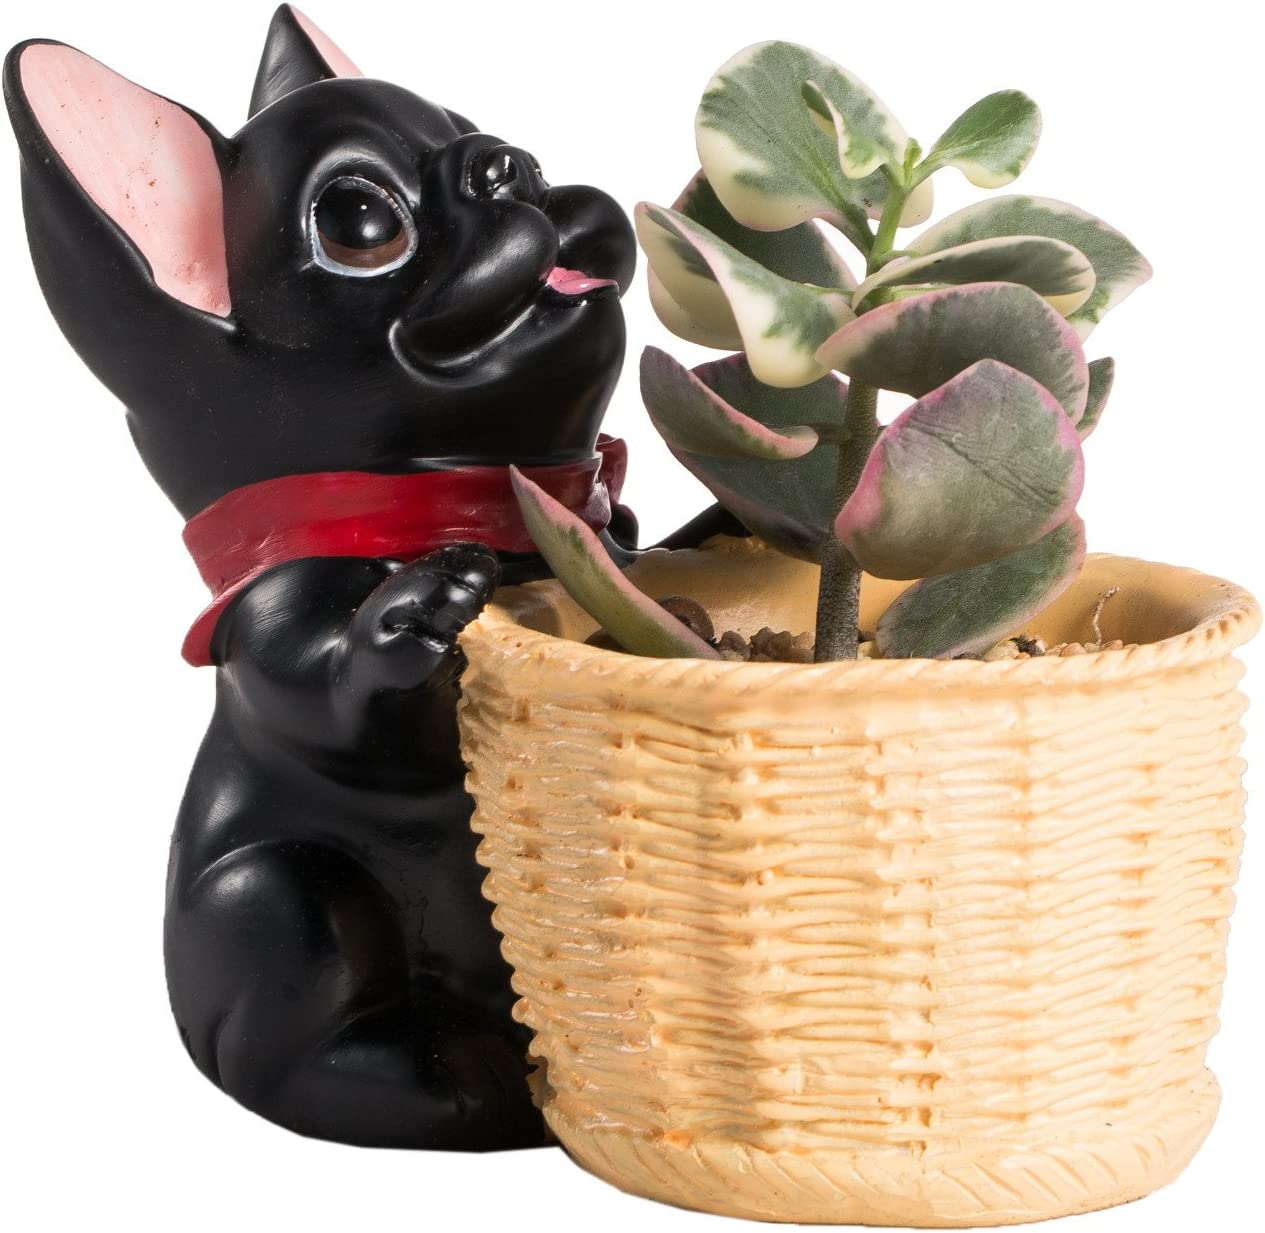 Tabletop Decorative Black French Bull Dog Resin Planter Plants Cactus Succulent Container Home Garden Display Flower Pot Decor Bonsai Miniature No Plants